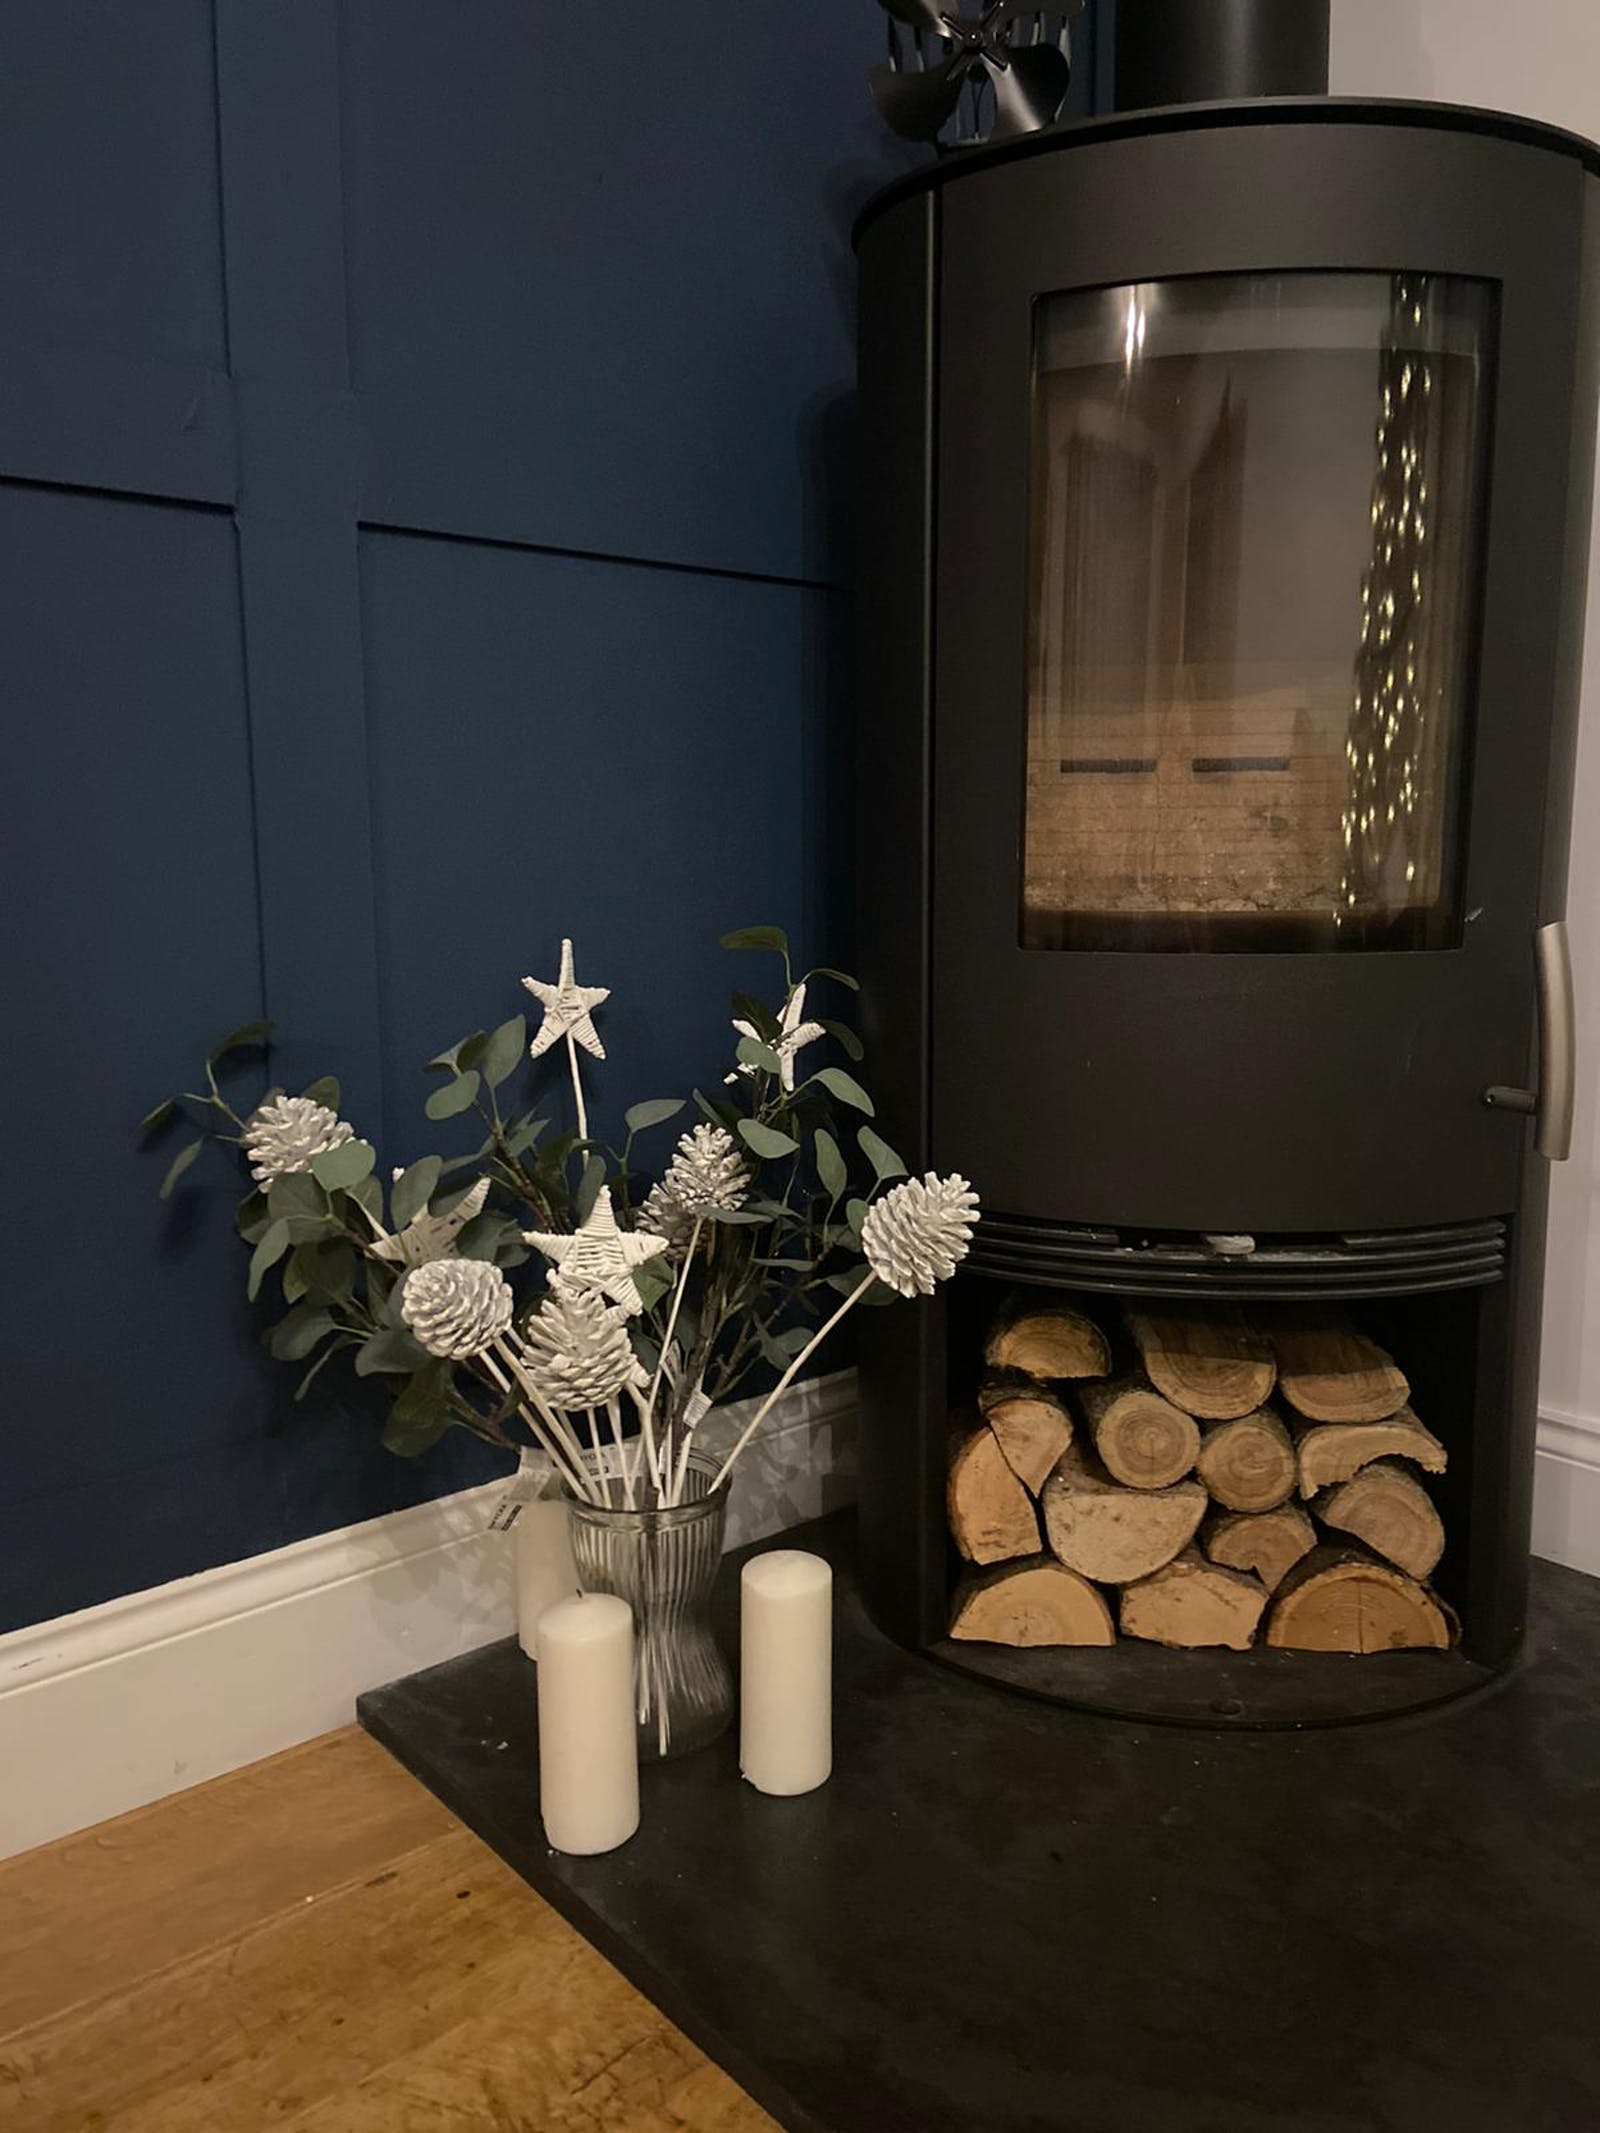 Log fireplace in living room with Lick Blue 06 painted wall panels and flowers in a vase on the floor